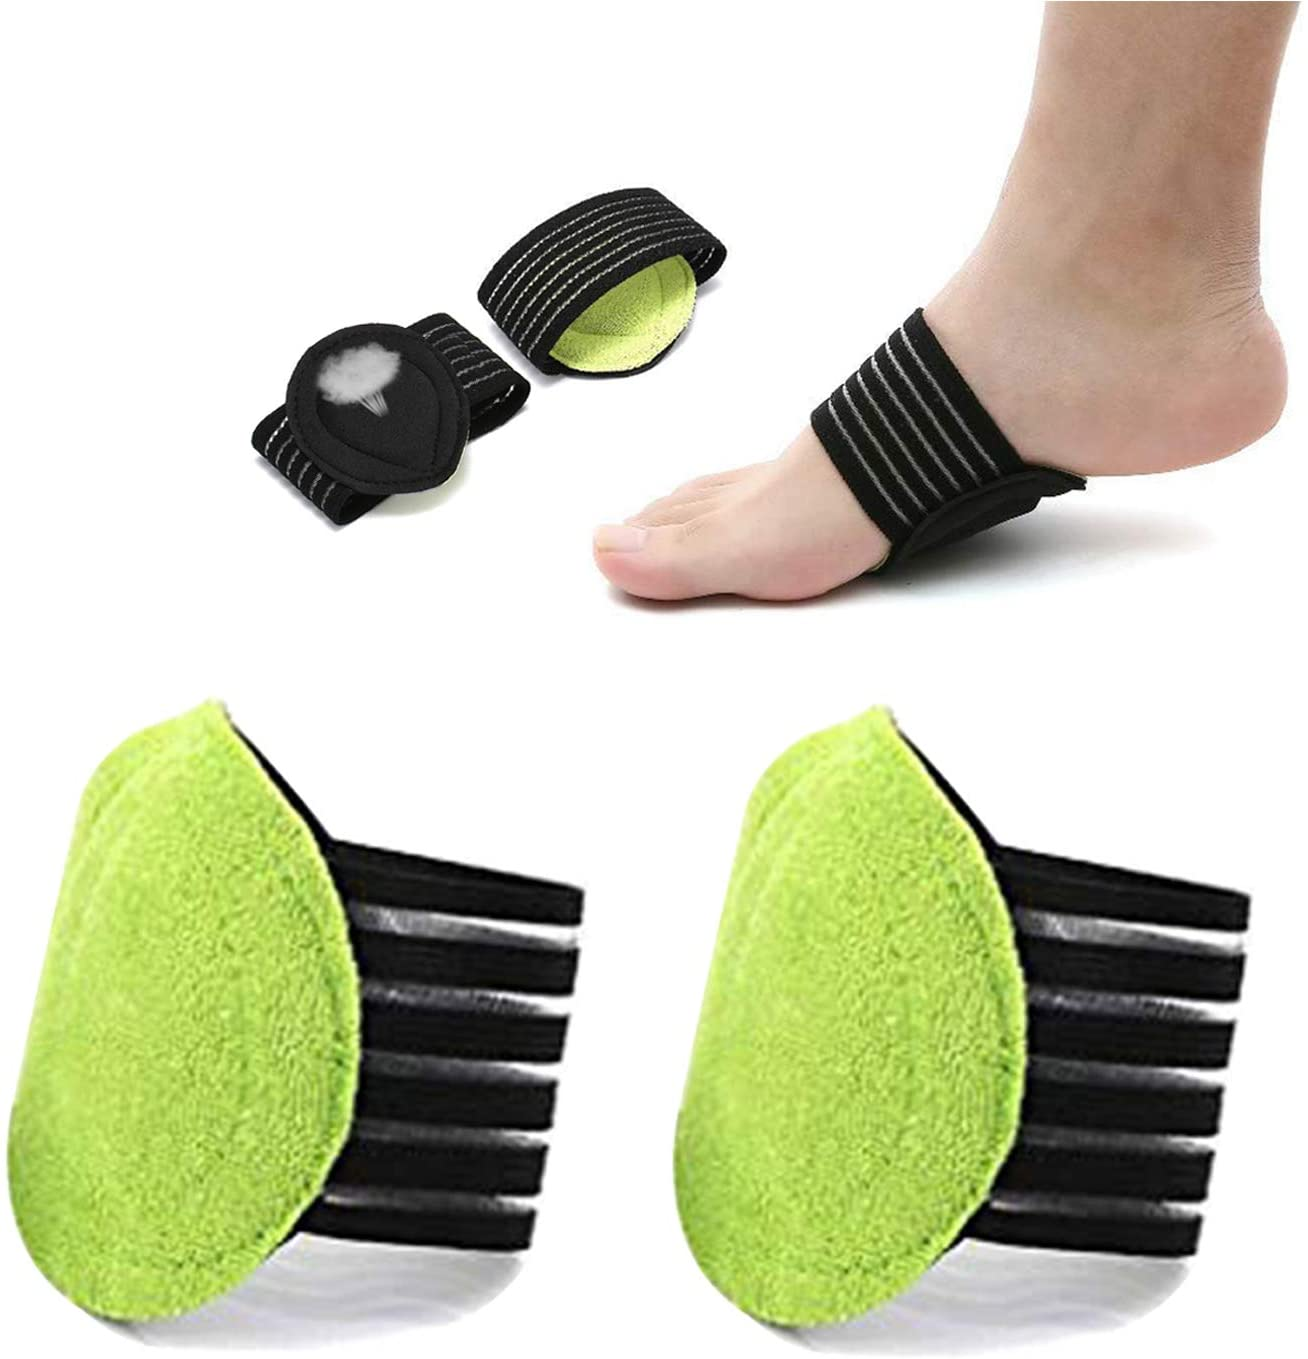 Plantar Fasciitis Support, Compression Cushioned Sleeves with Padded Comfort Cushions High Arch Support for Heel Spurs Achy Foot Plantar Fasciitis Brace for Running, Exercise, Men and Women (2 Pairs)